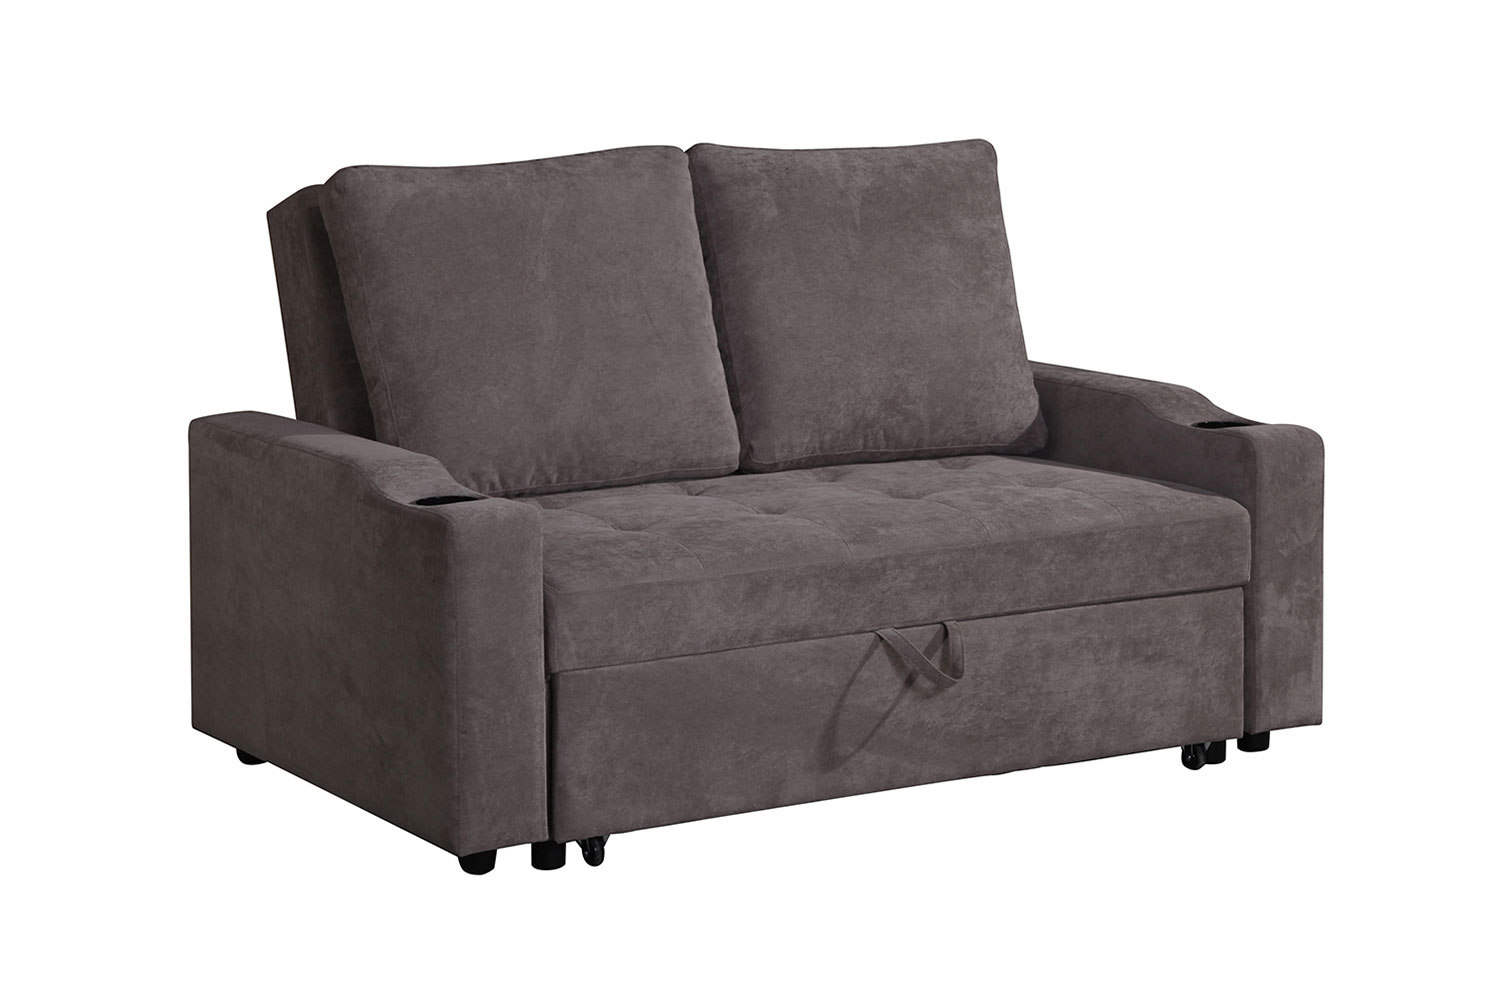 Asia Direct 2071 Daryl brown linen like fabric love seat set with pull out sleep area chaise